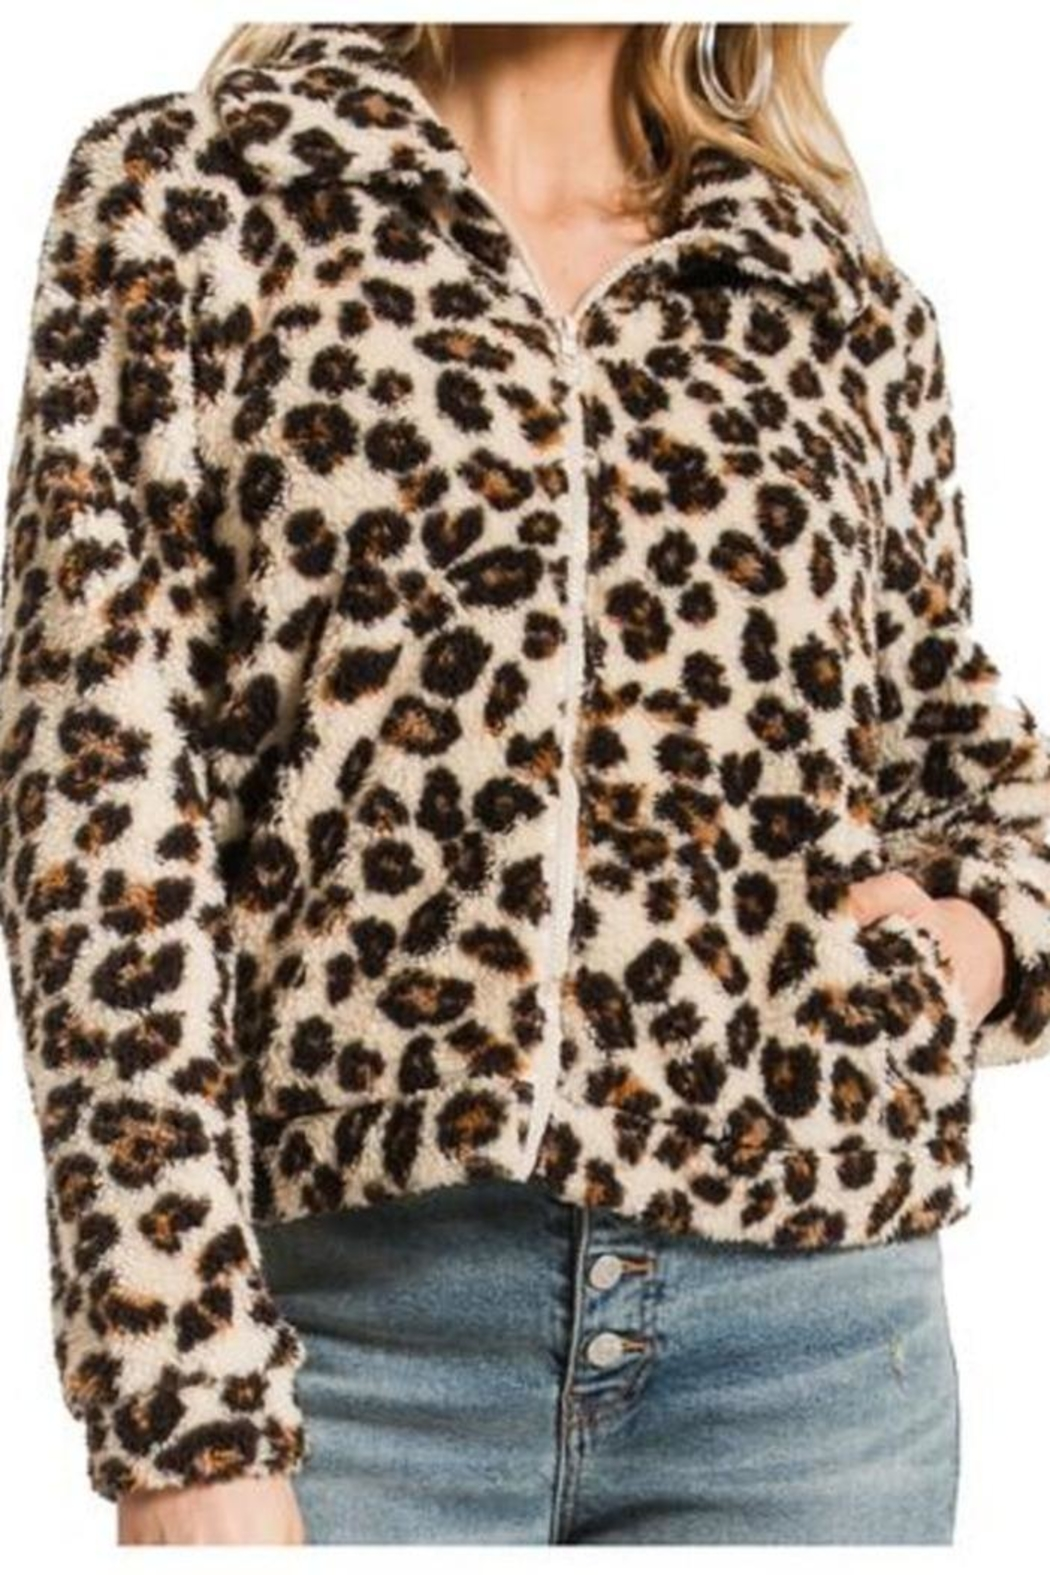 z supply Leopard Sherpa Crop - Main Image